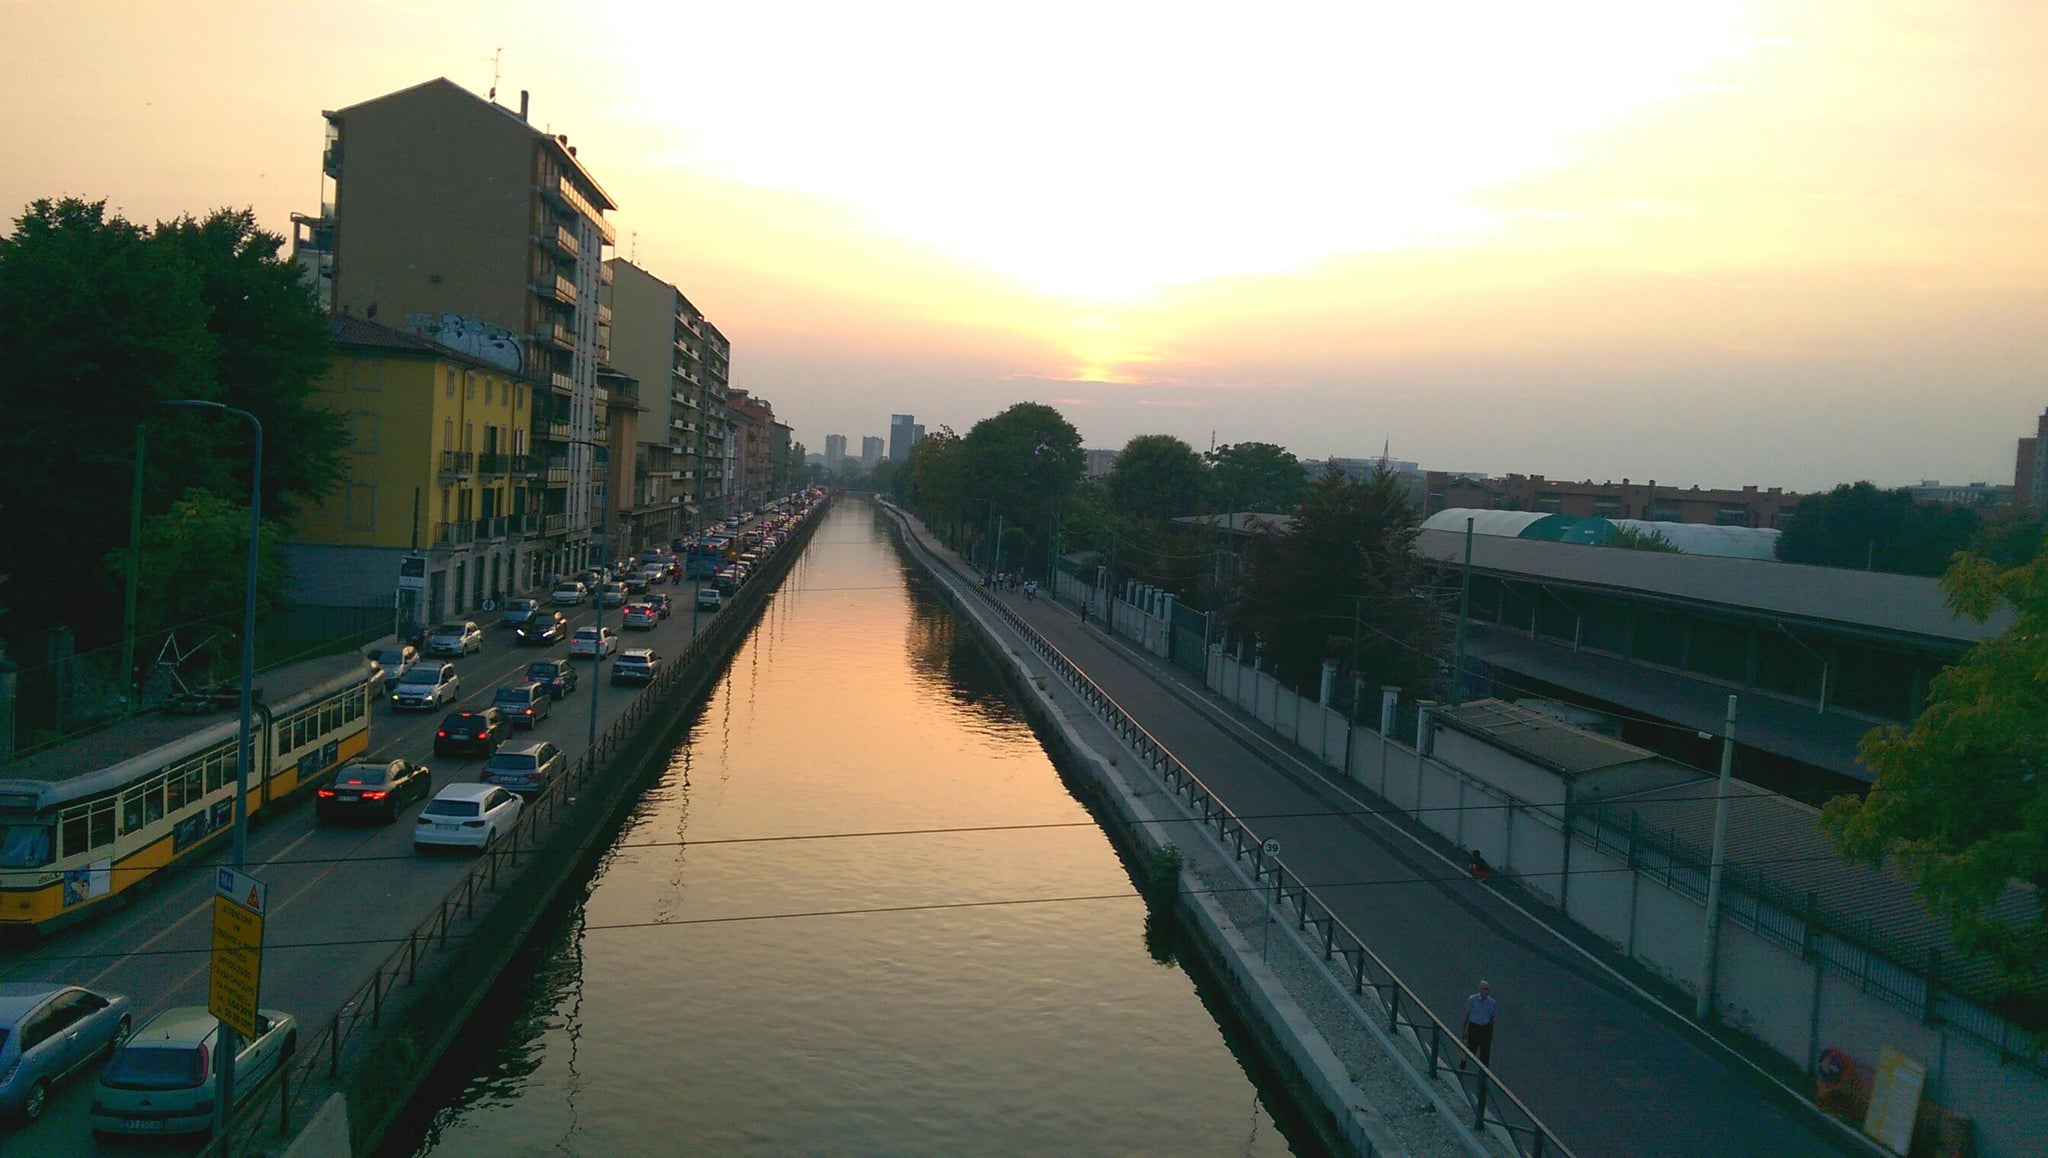 Milan canals at sunset